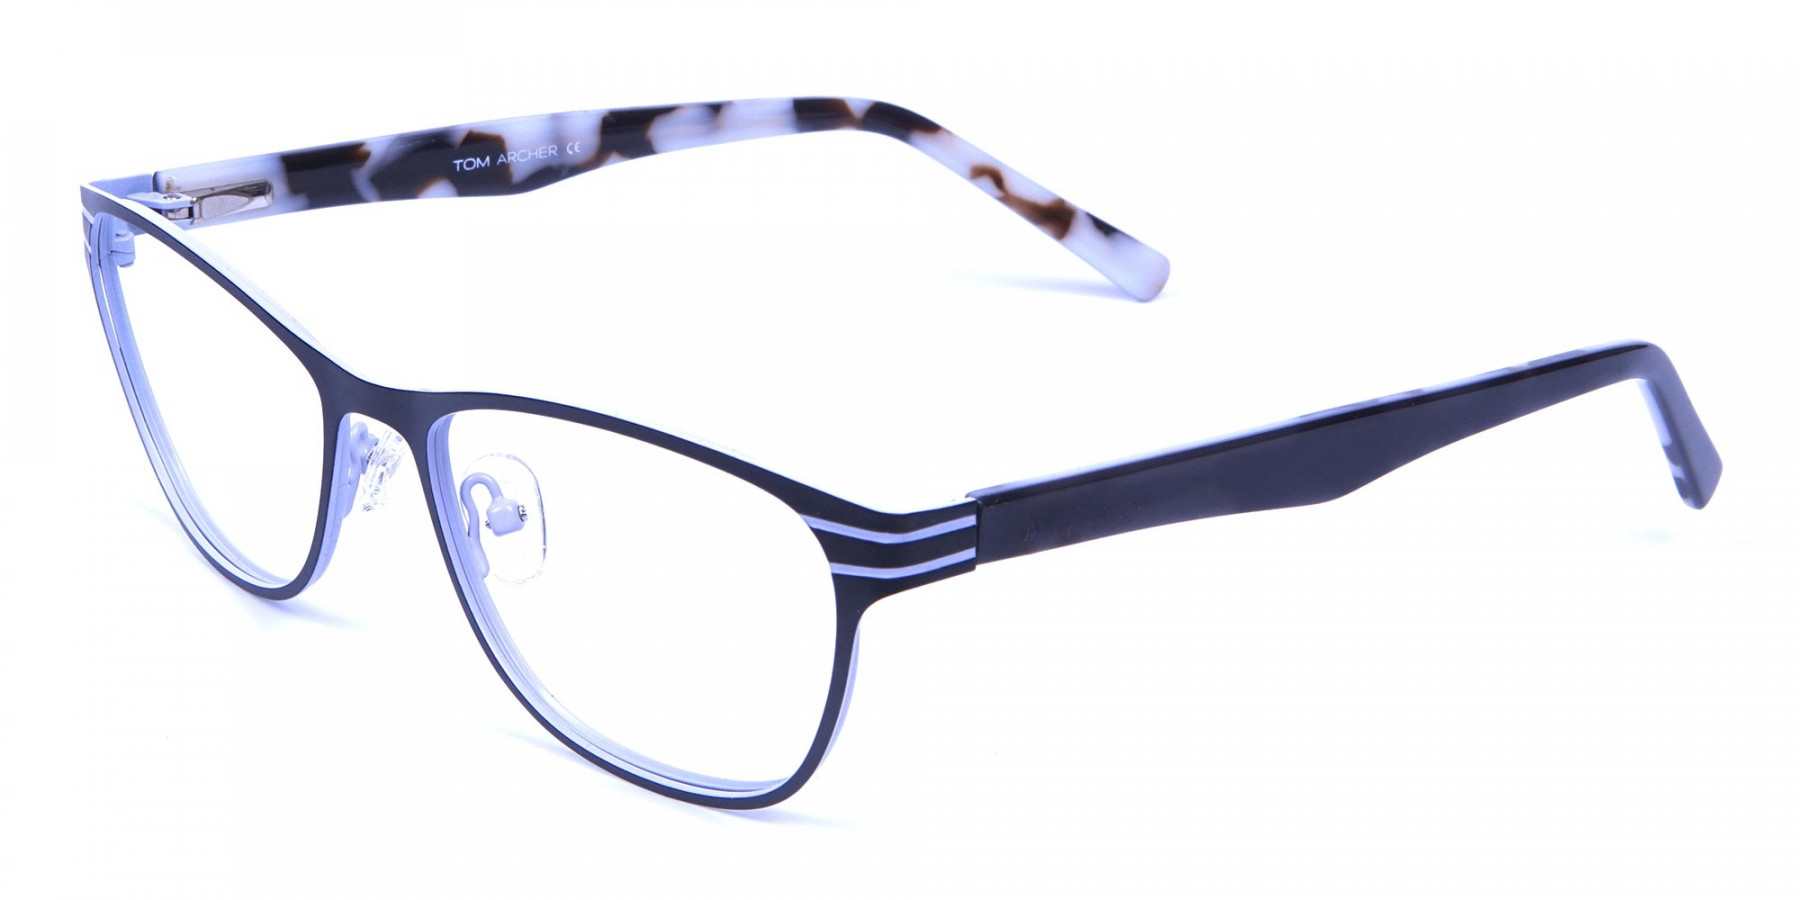 Back and White Cat Eye Glasses Perfection